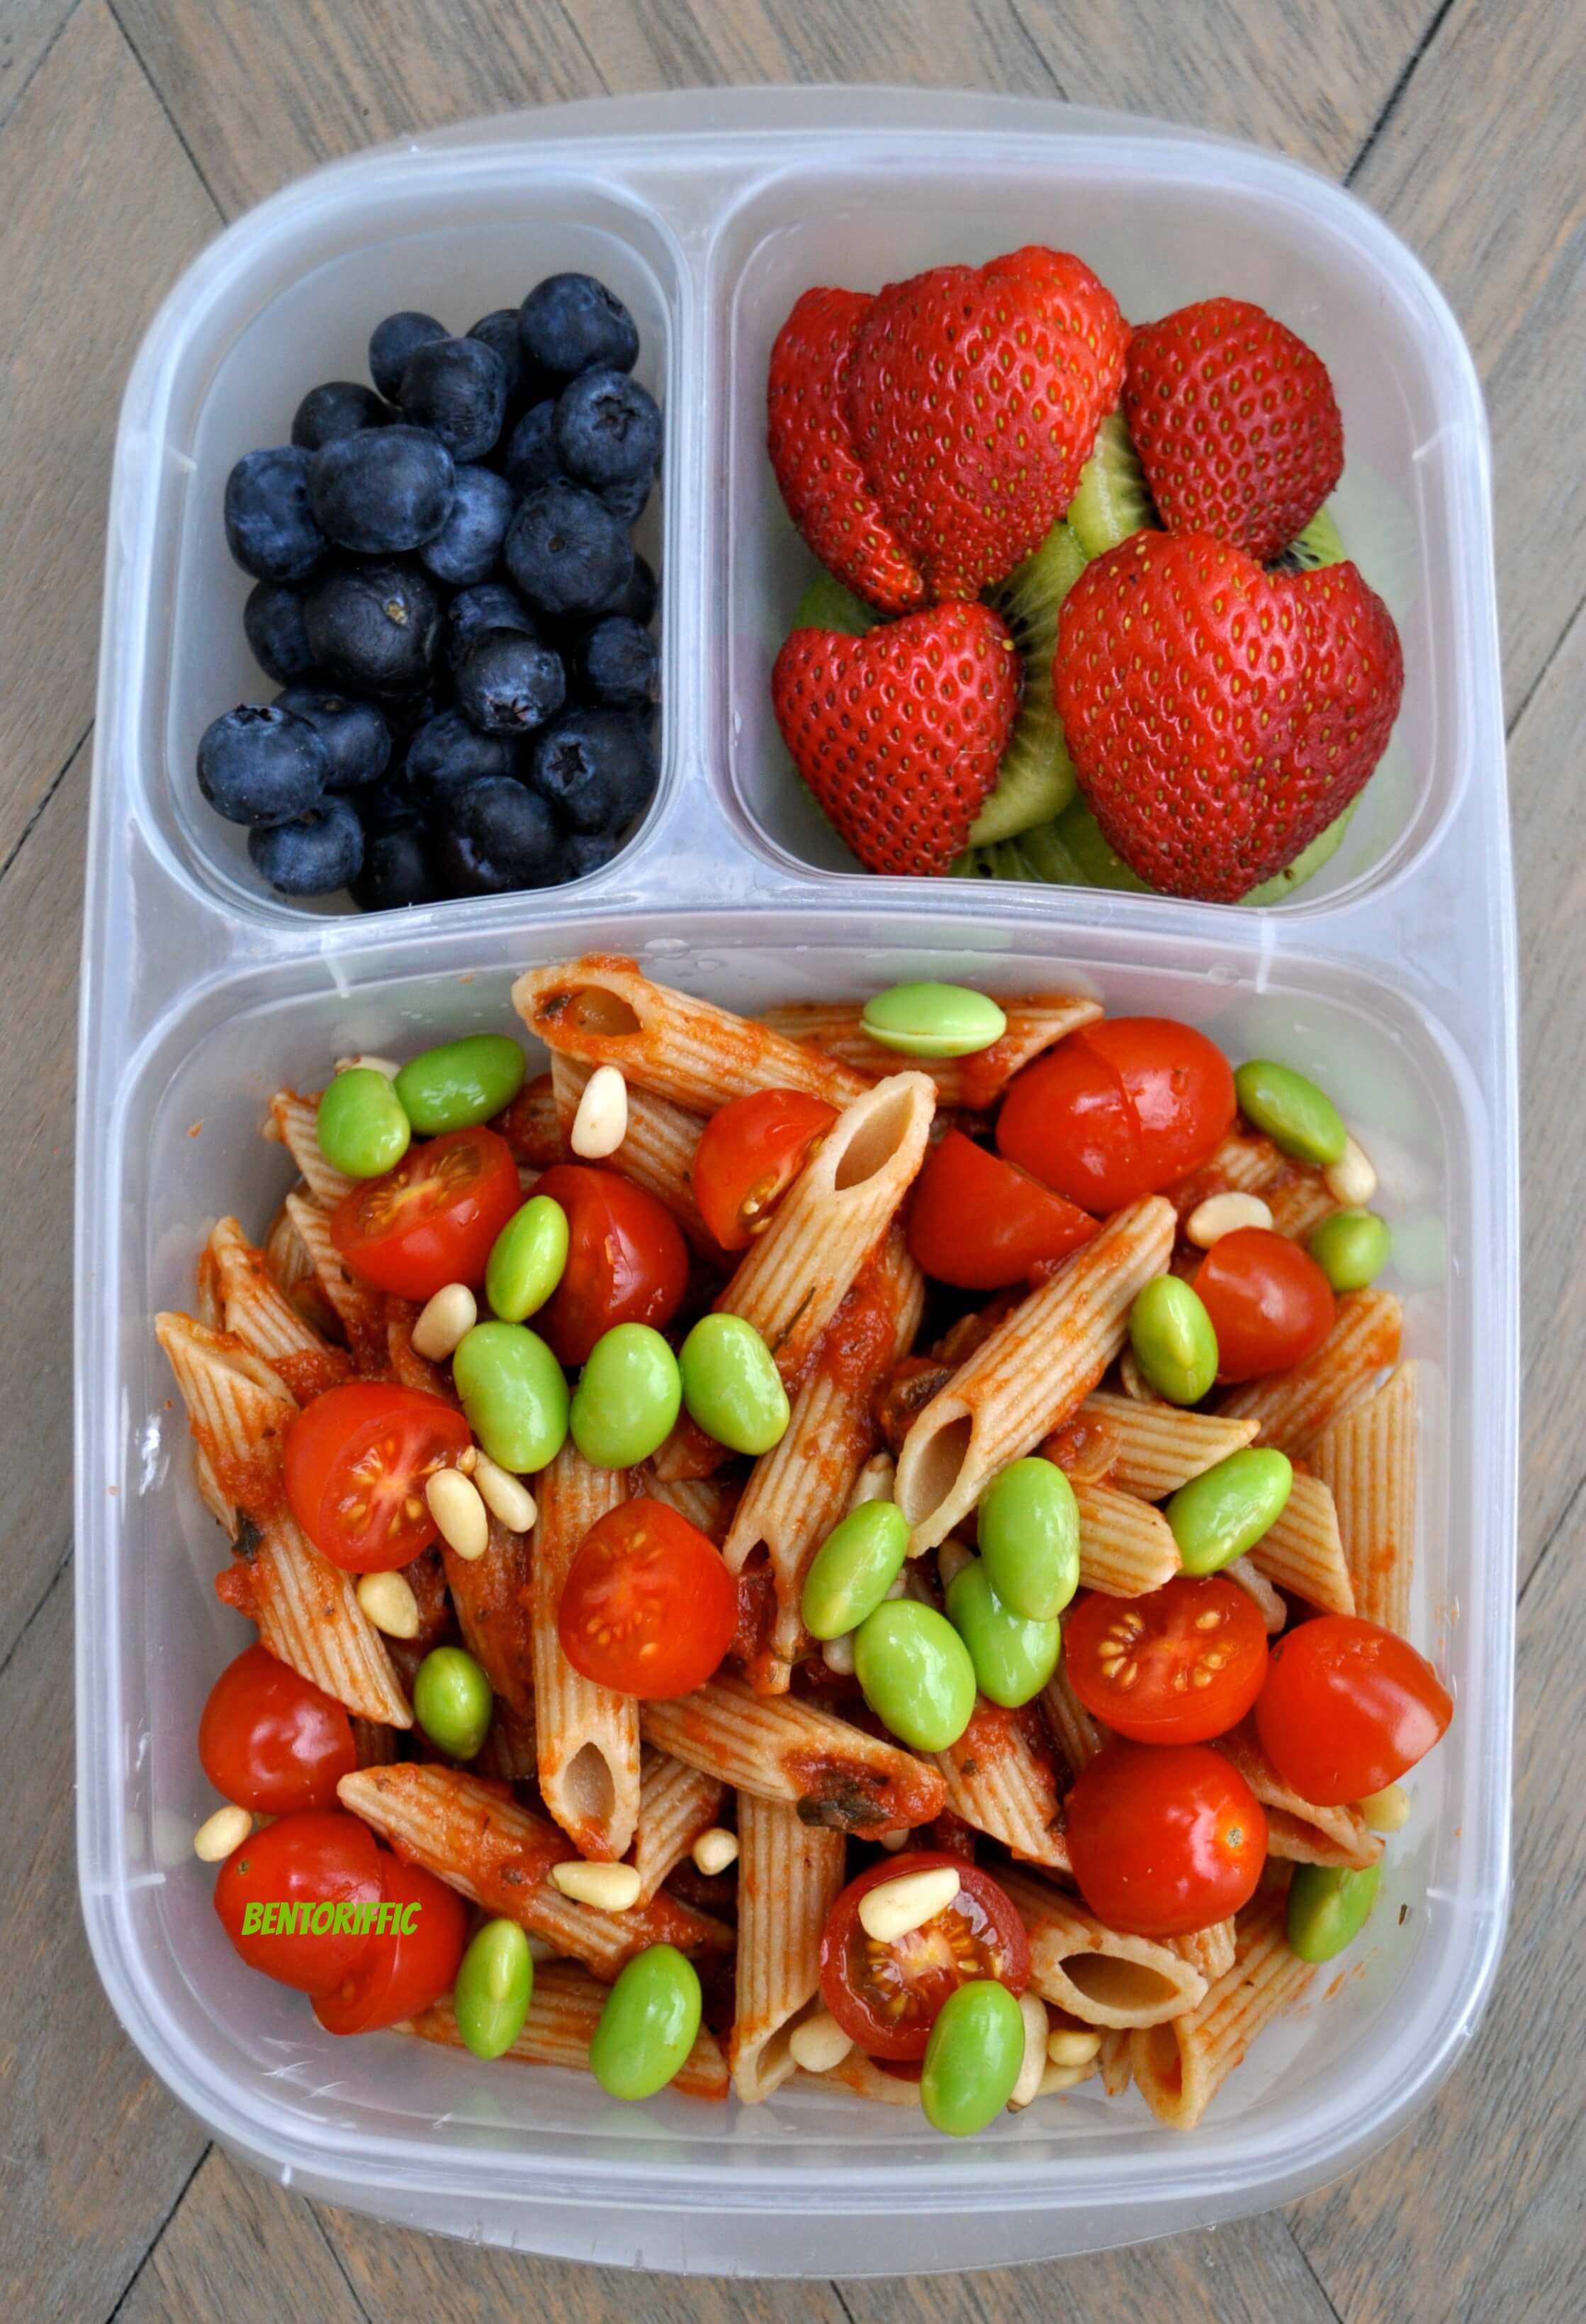 Healthy Vegan Lunch Recipes  23 Healthy Vegan Back to School Recipes Your Kids Will